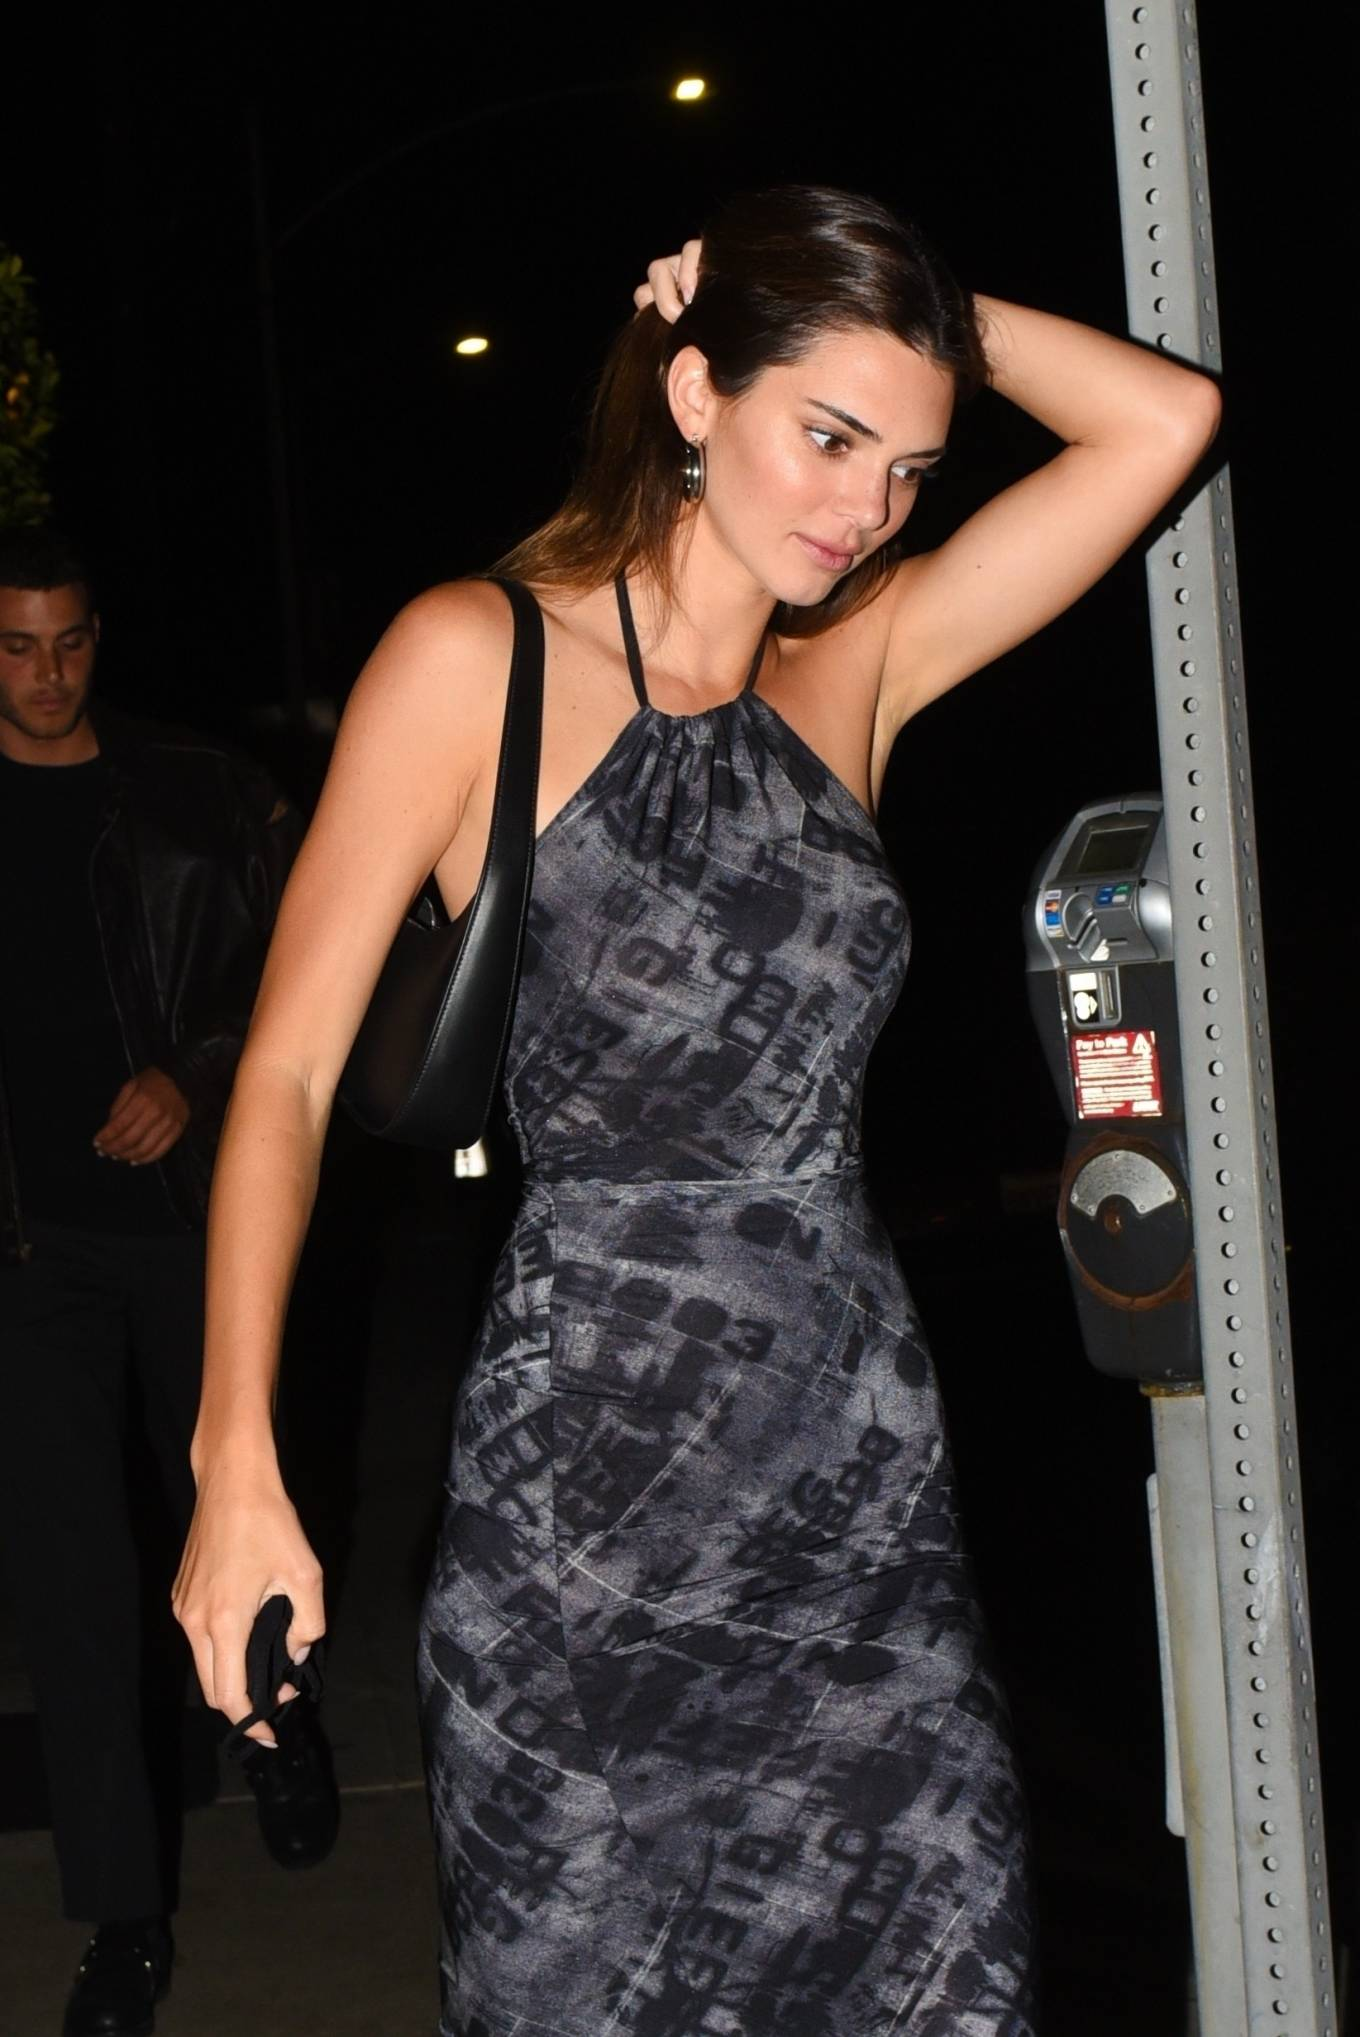 Kendall Jenner donning a Figure hugging grey tie dye printed midi dress with a halter neck and cinched waist